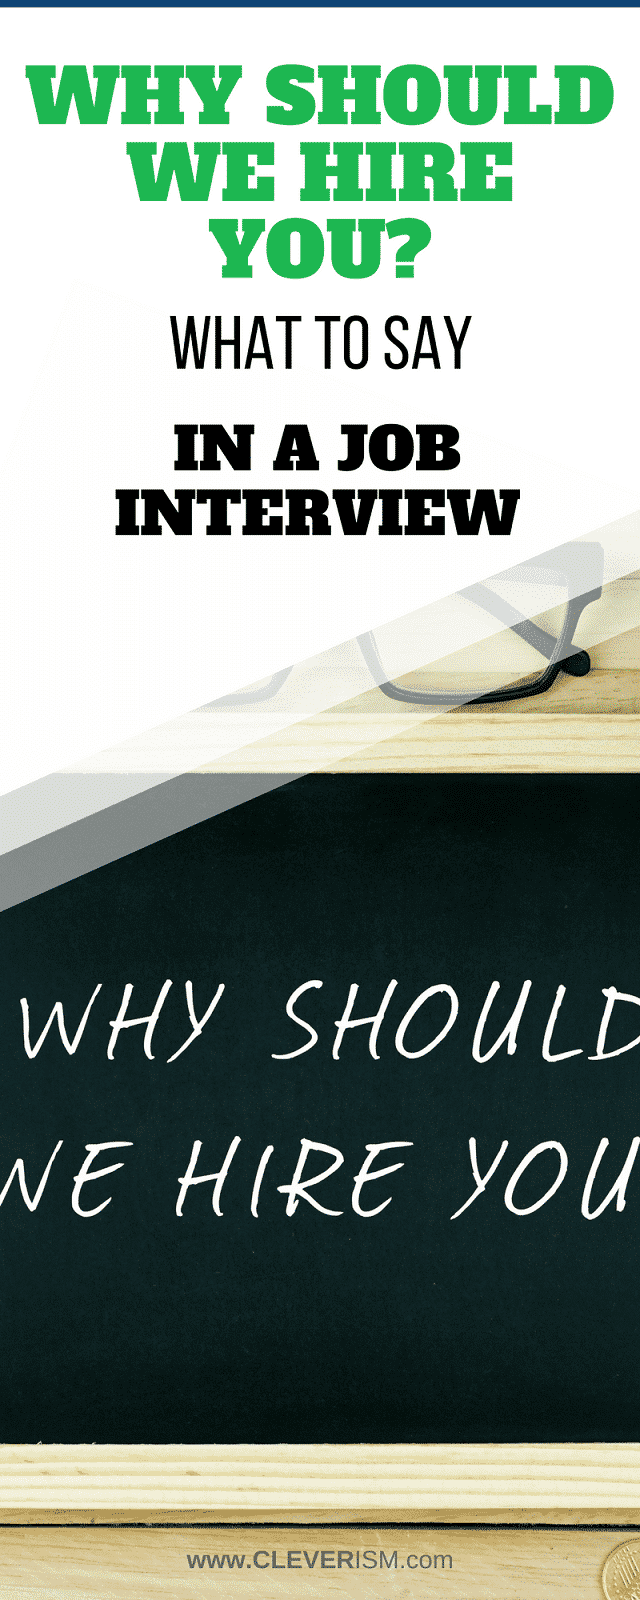 Why Should We Hire You What To Say In A Job Interview